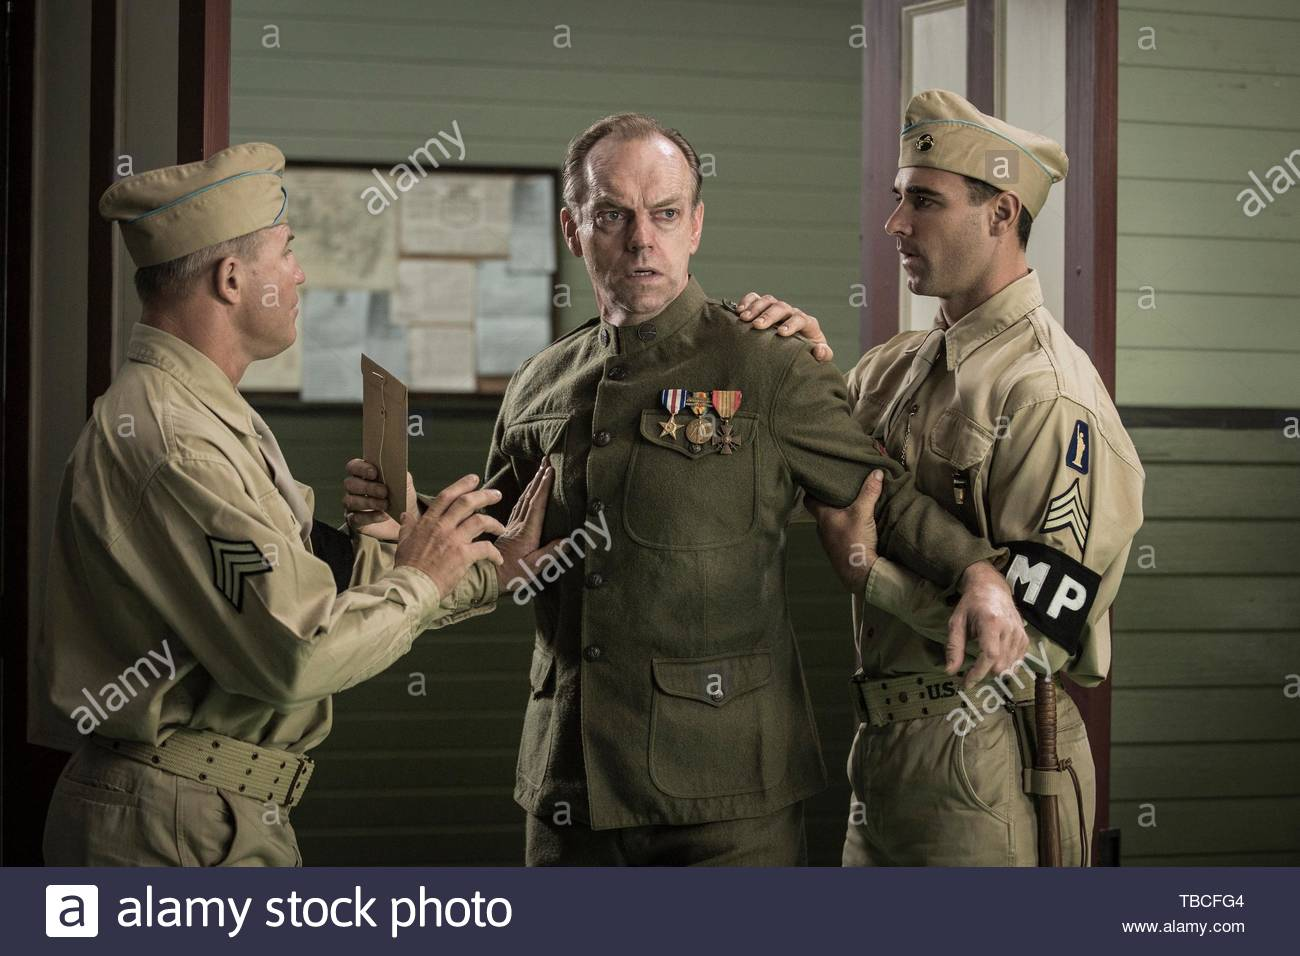 HUGO WEAVING in HACKSAW RIDGE (2016). Copyright: Editorial inside use only. This is a publicly distributed handout. Access rights only, no license of copyright provided. Mandatory authorization to Visual Icon (www.visual-icon.com) is required for the reproduction of this image. Credit: PANDEMONIUM/PERMUT PRESENTATIONS / Album - Stock Image